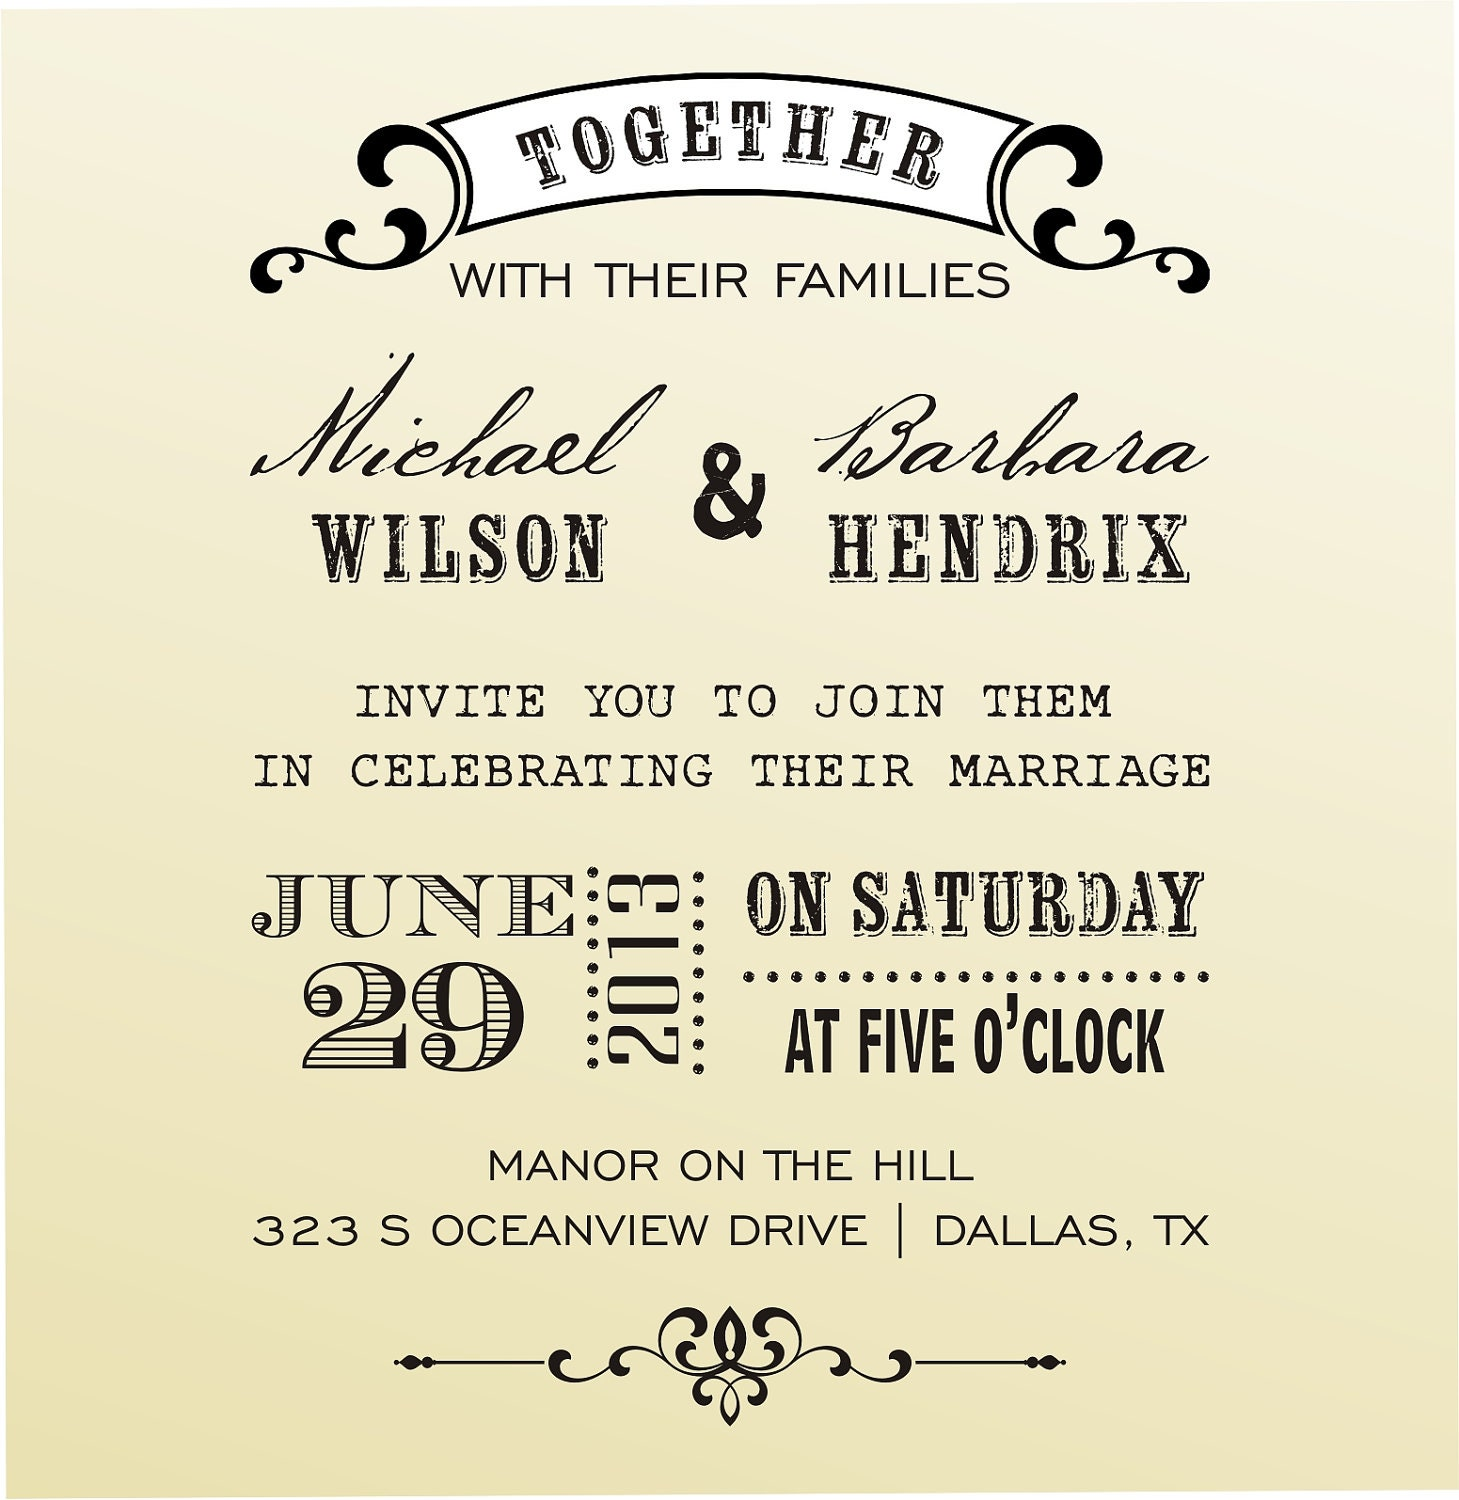 Font For Wedding Invitations - Home Design Ideas